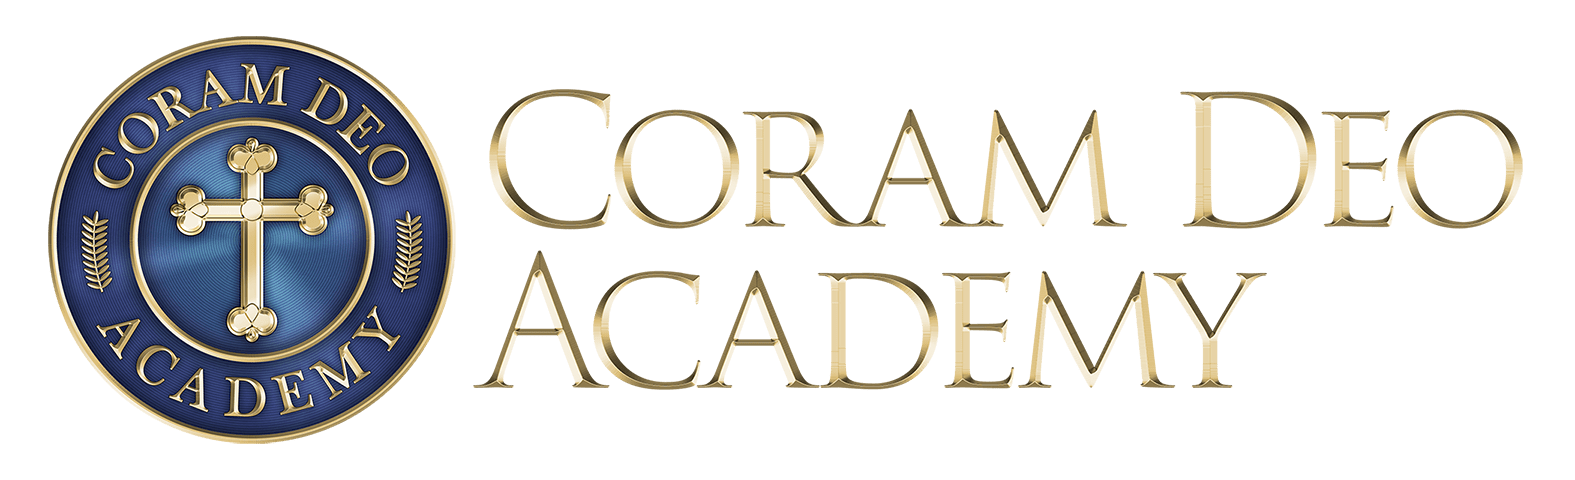 North American Reviews (School): Coram Deo Academy (CDA) - Christian Schools - North America